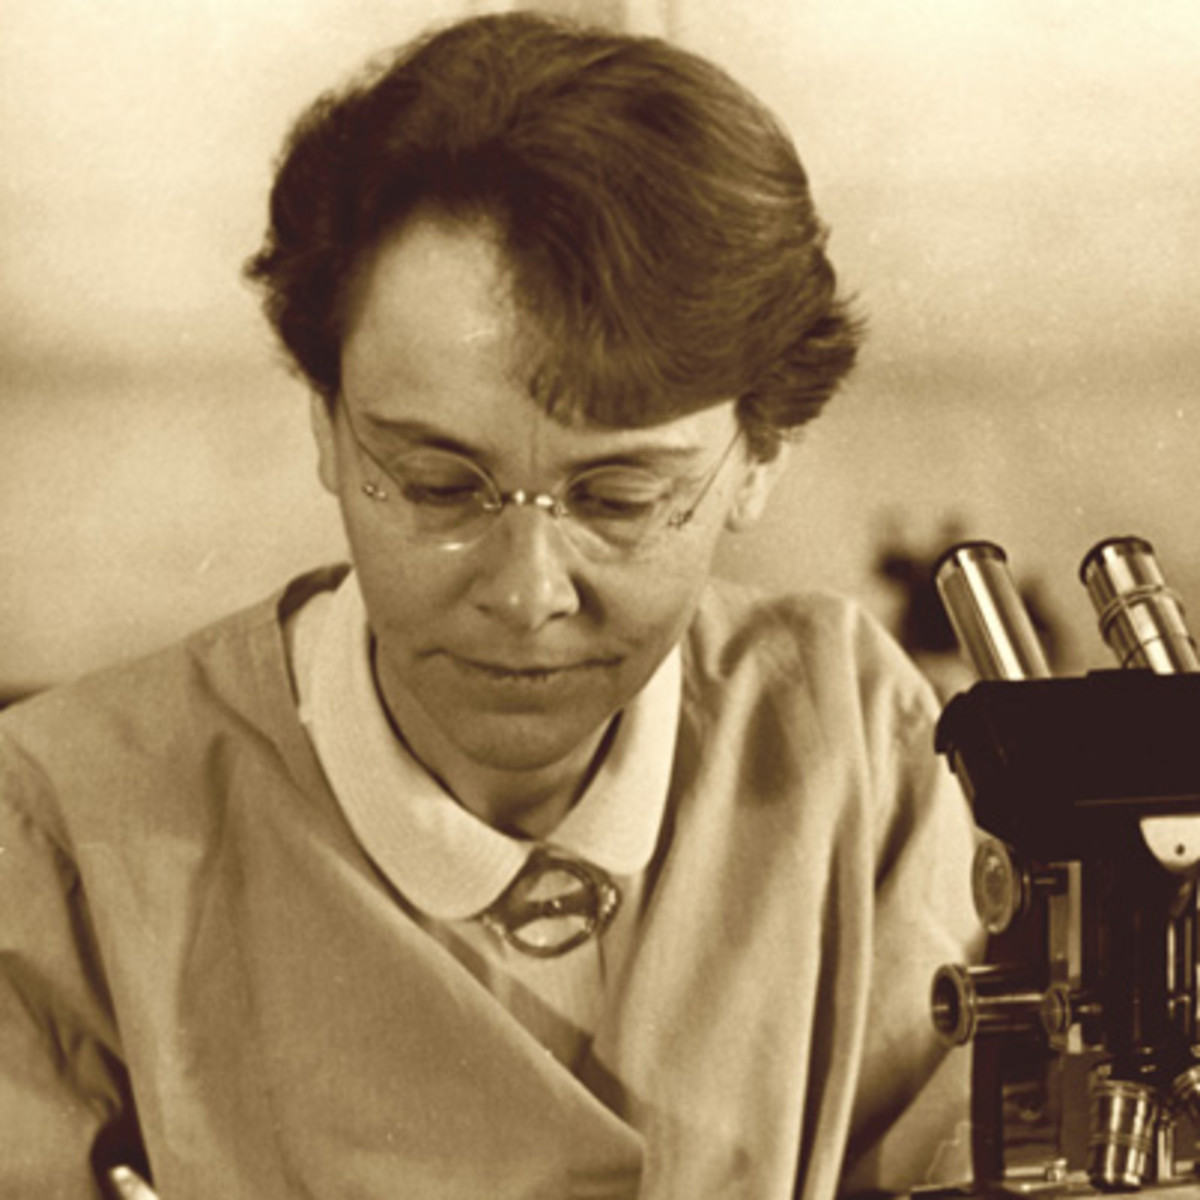 barbara mcclintock s contribution to science Barbara mcclintock discovered jumping genes ,  how does barbara mcclintock's contribution of science affect your lives she taught us how to twerk.